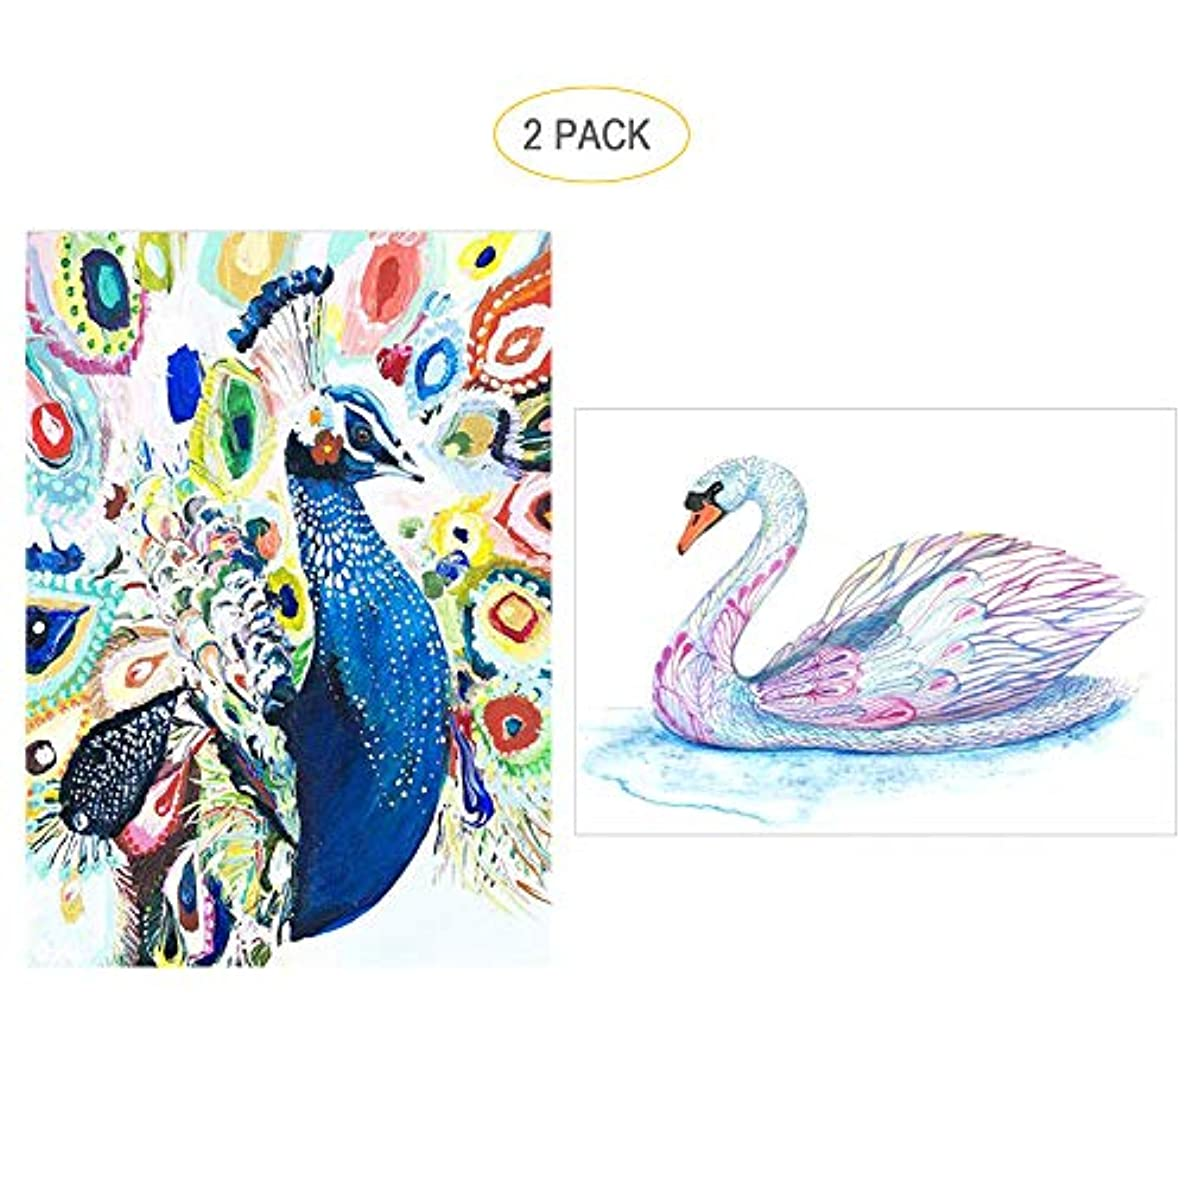 5D Full Drill Diamond Painting Kit,Hartop DIY Diamond Rhinestone Painting Kits for Adults and Beginner,Embroidery Arts Craft Home Office Decor 12 X 16 Inch (2 Pack of Peacock Swan)